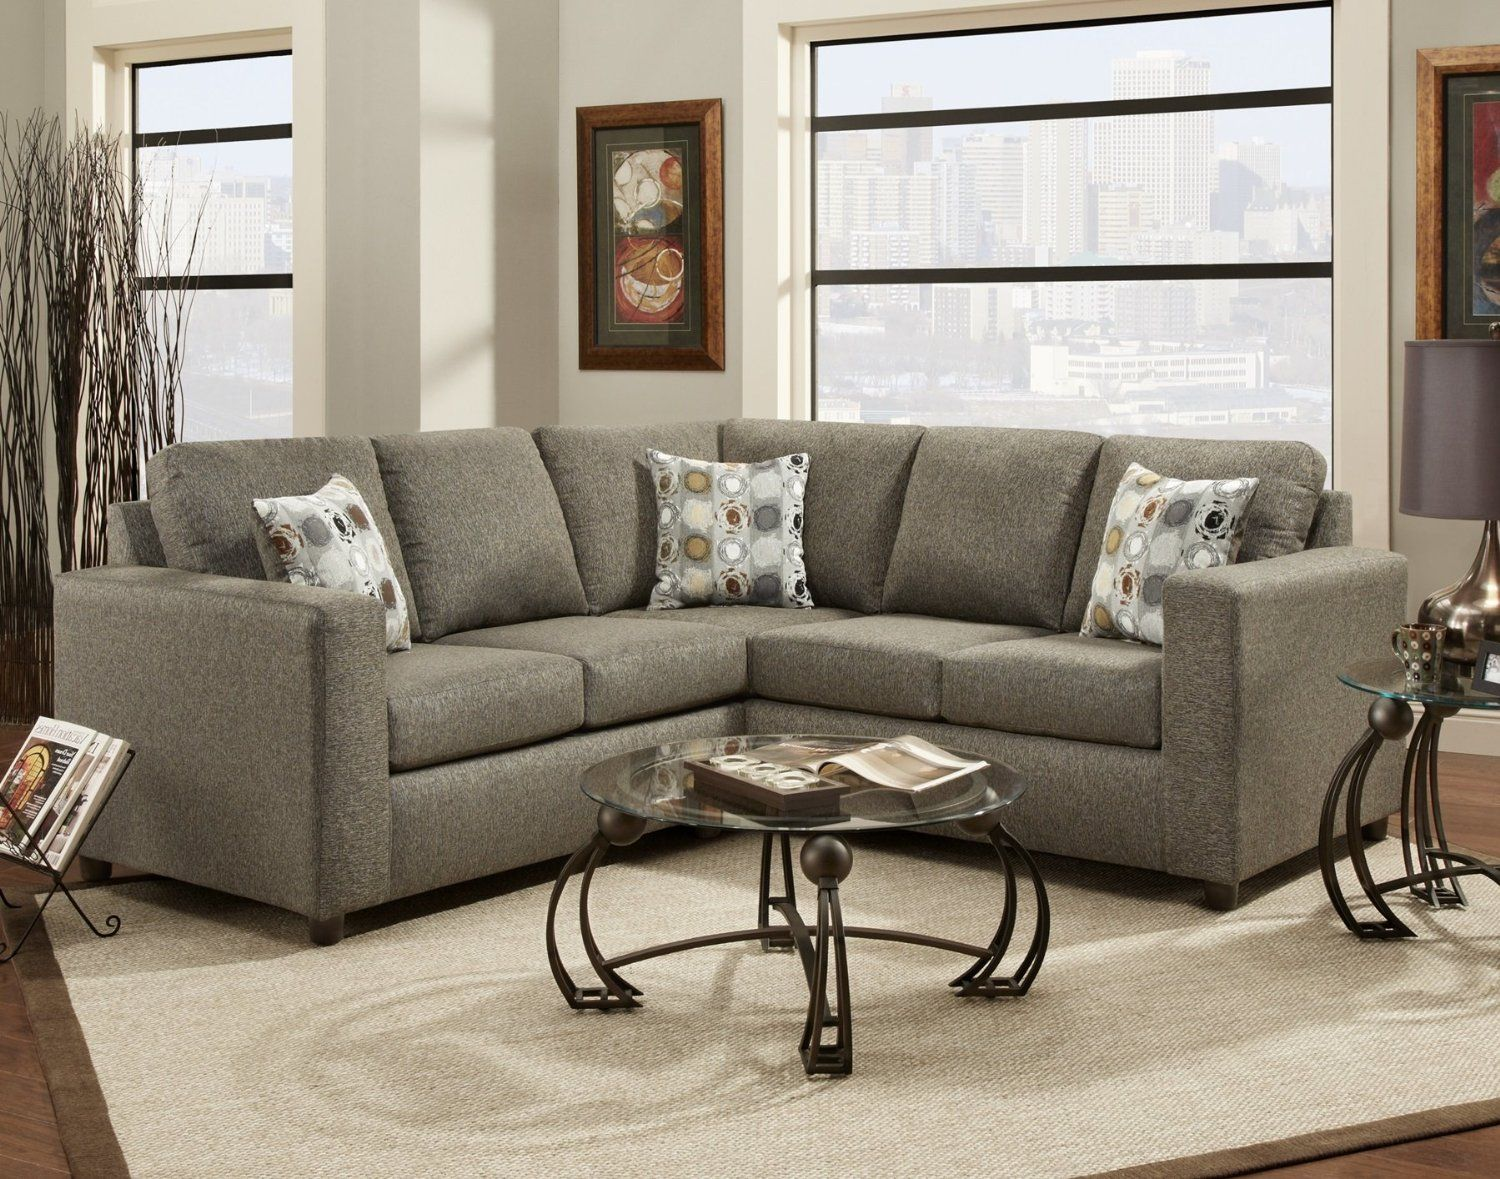 Explore Sectional Furniture And More!